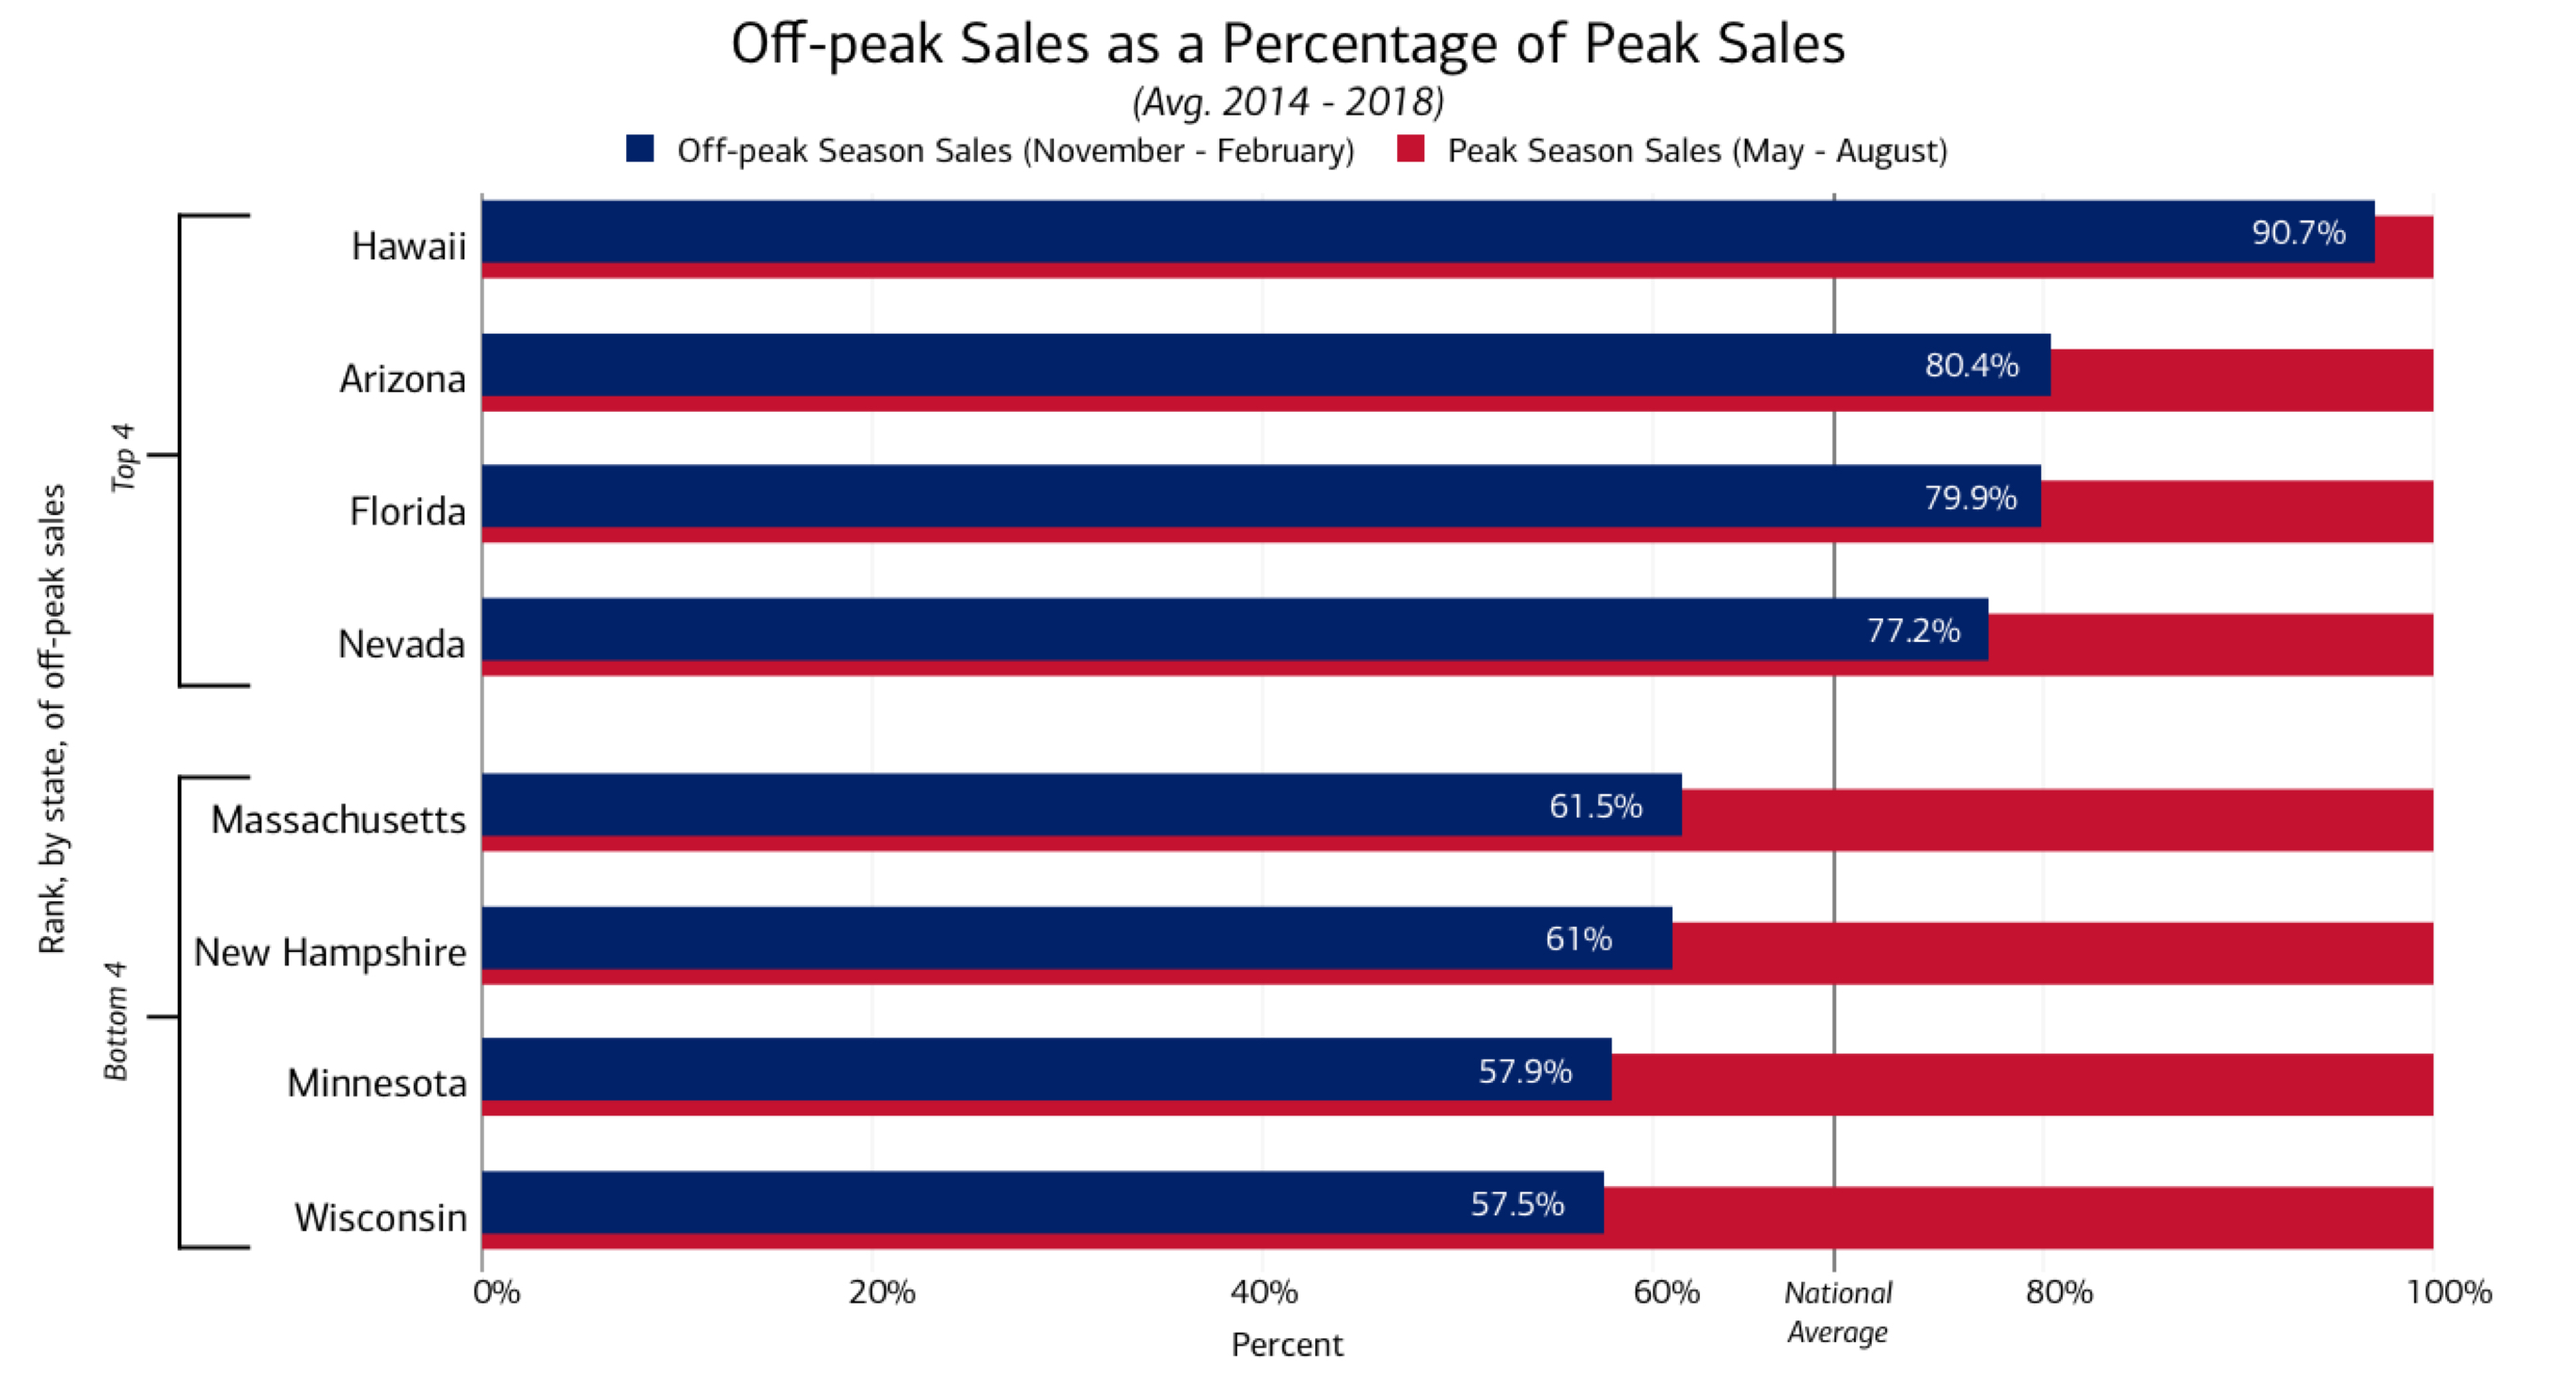 This horizontal bar chart shows the four best and four worst performing states by their off-peak sales as a percentage of their peak season sales. The off-peak season is defined as November through February, the peak season is defined as May through August. The sales data was calculated using the average number of sales from 2014 to 2018.